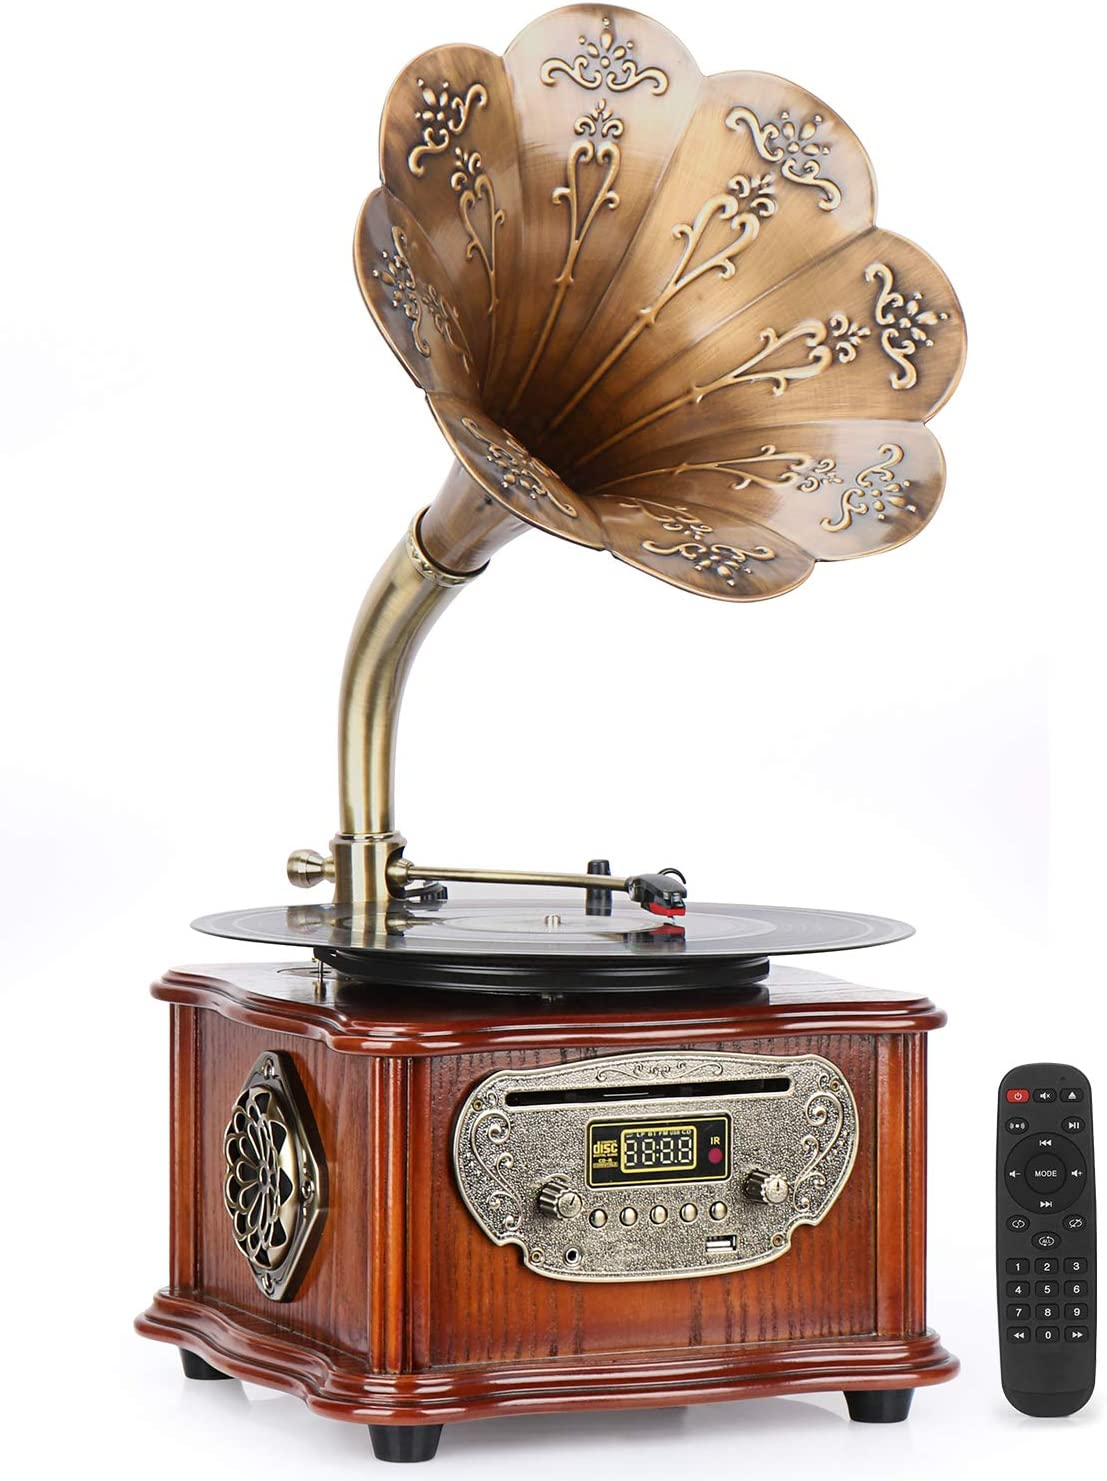 Phonograph Vintage Turntables with Wireless Speakers, Record Player, CD Player/3.5mm Aux-in/FM Radio/USB, Wood Gramophone with Copper Horn for Office/Home Decor